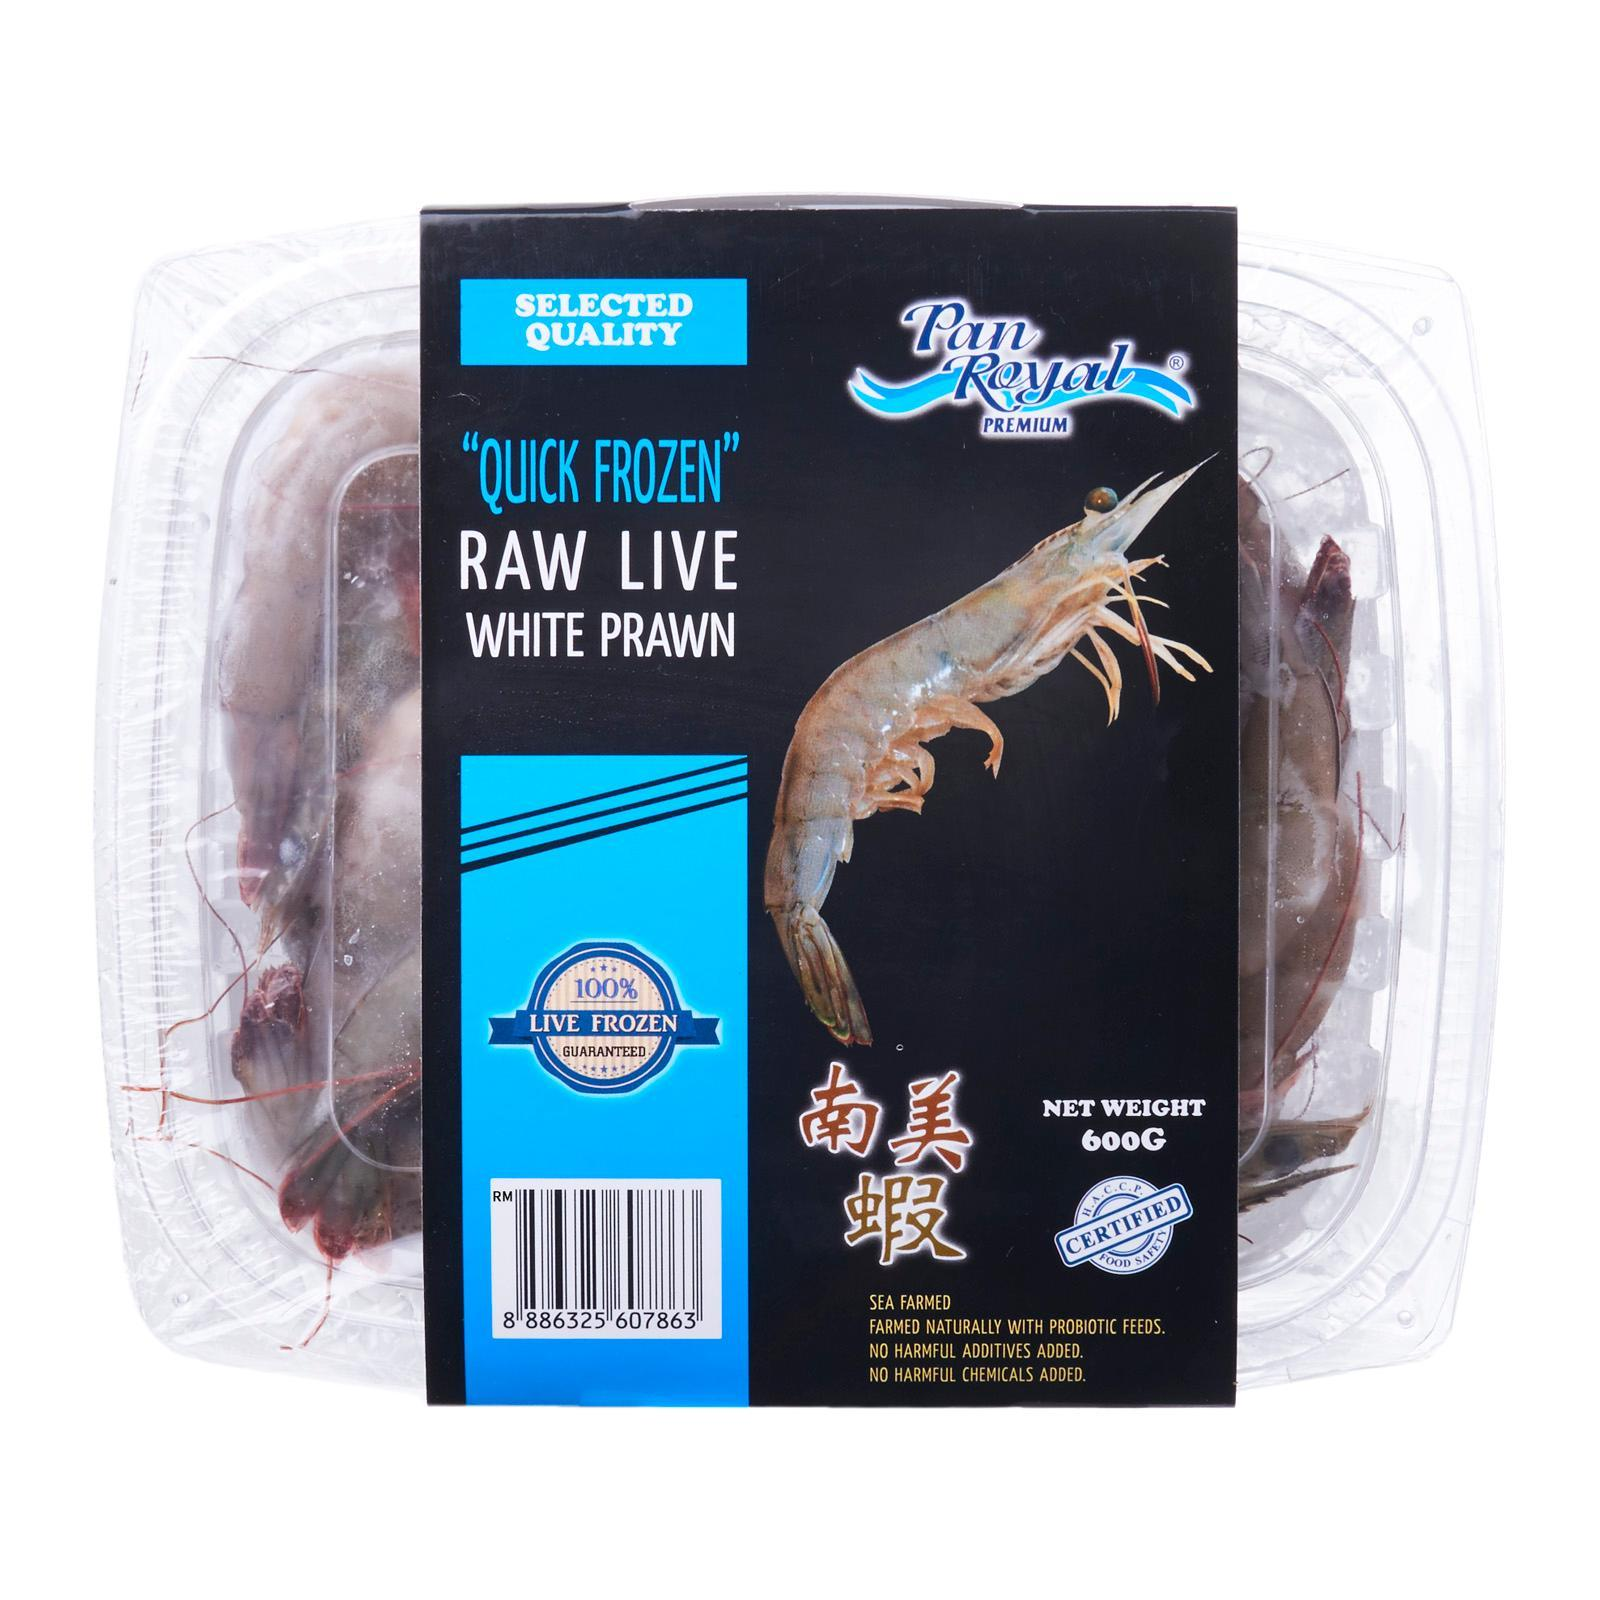 Pan Royal Raw Live Prawn 41/50 - Frozen